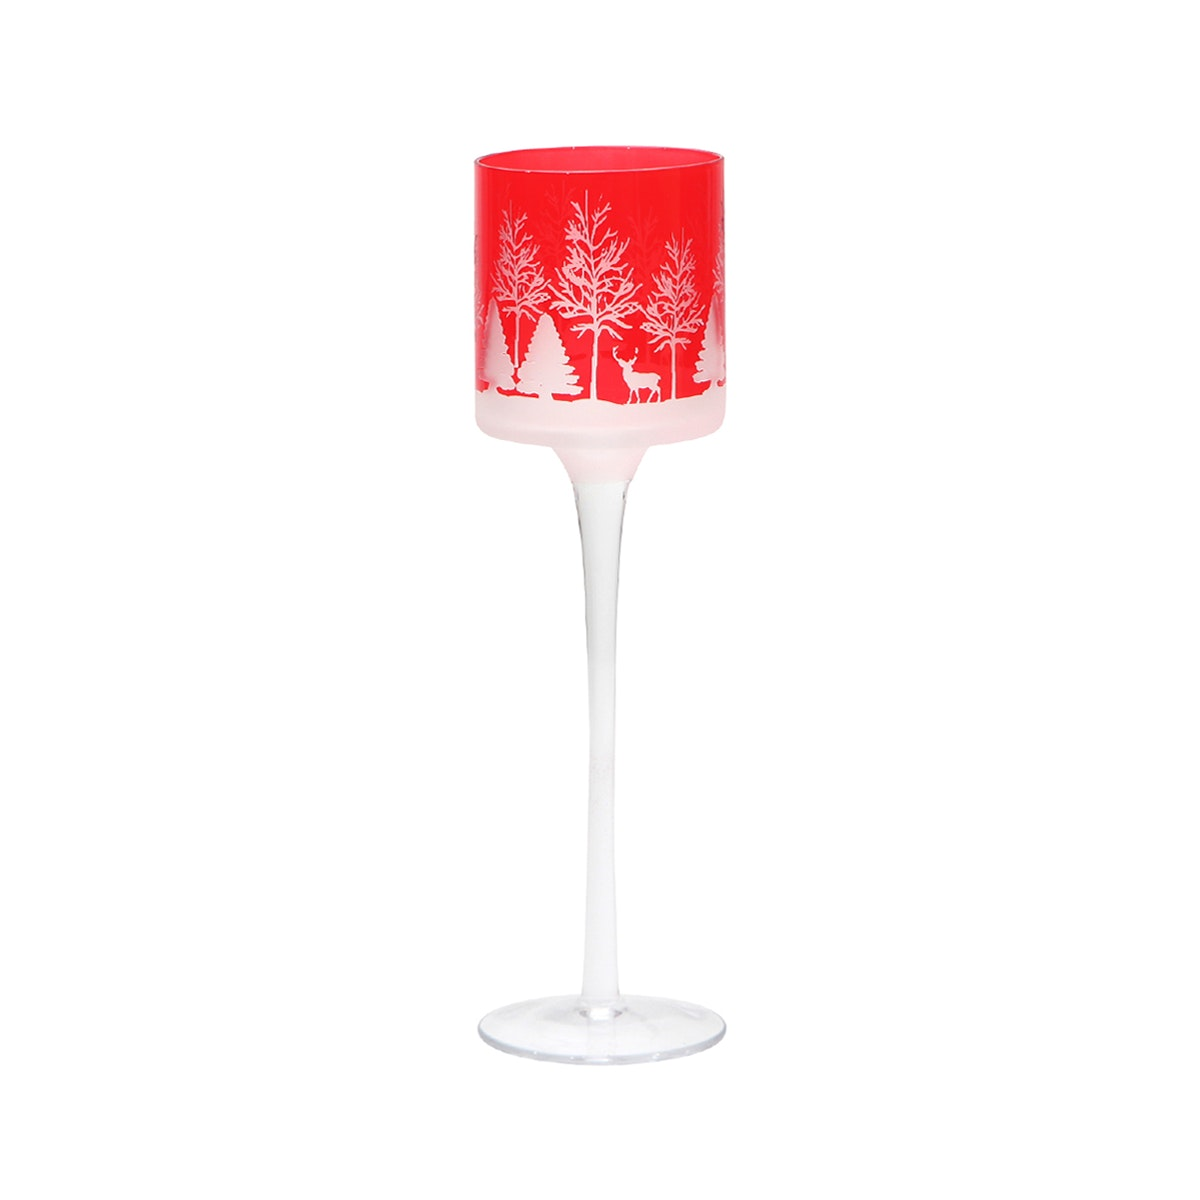 Vivere Hurricane Candle Holder cmas Red 7x25 cm